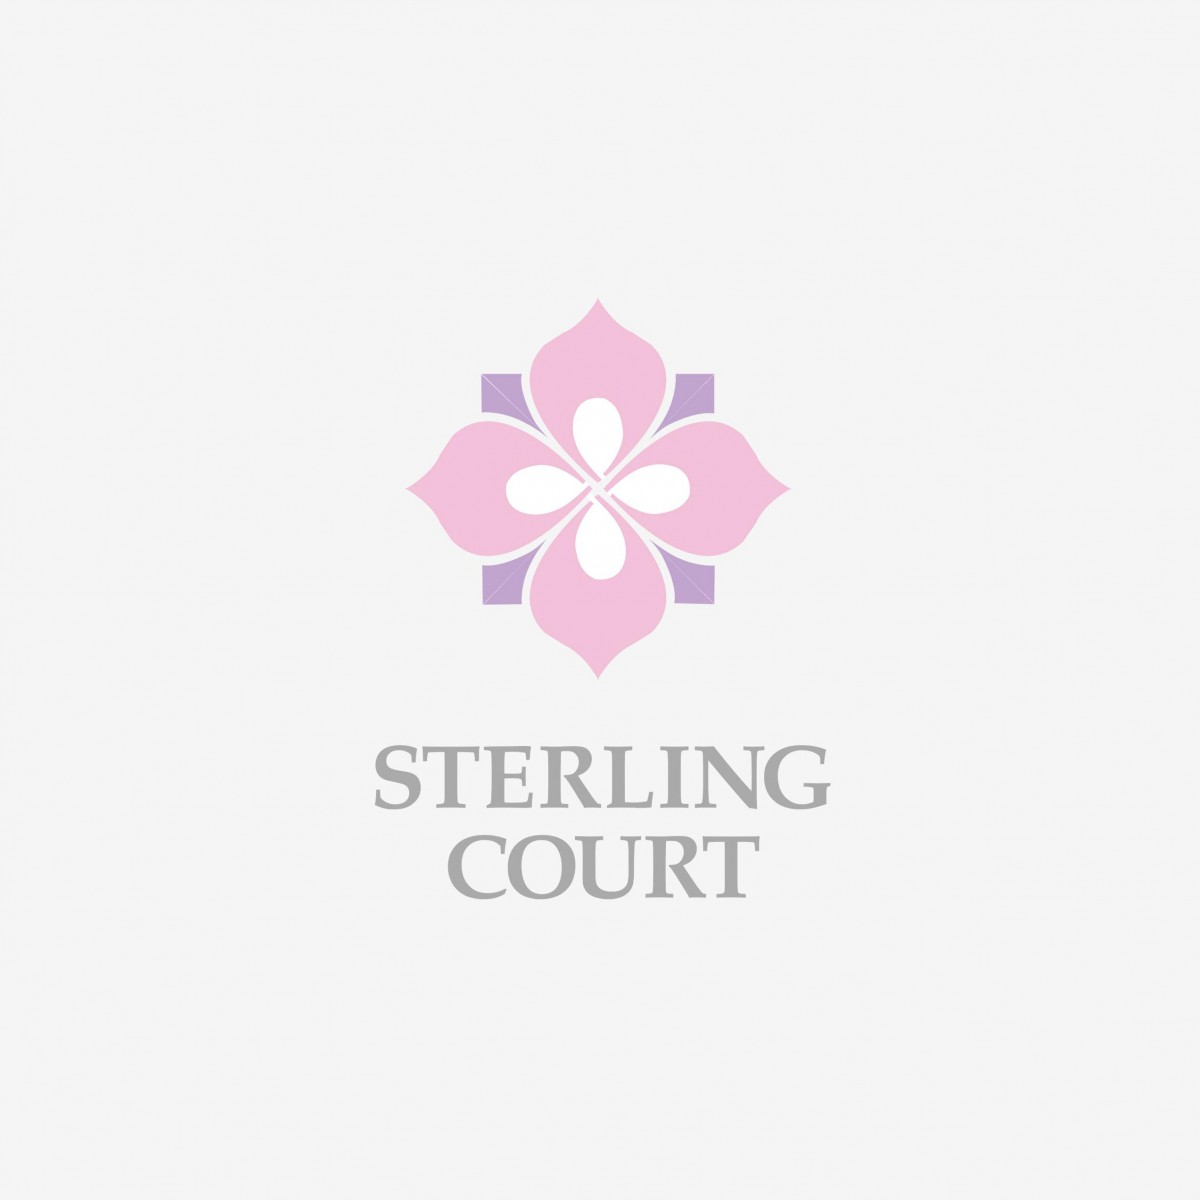 Sterling Court corporate identity